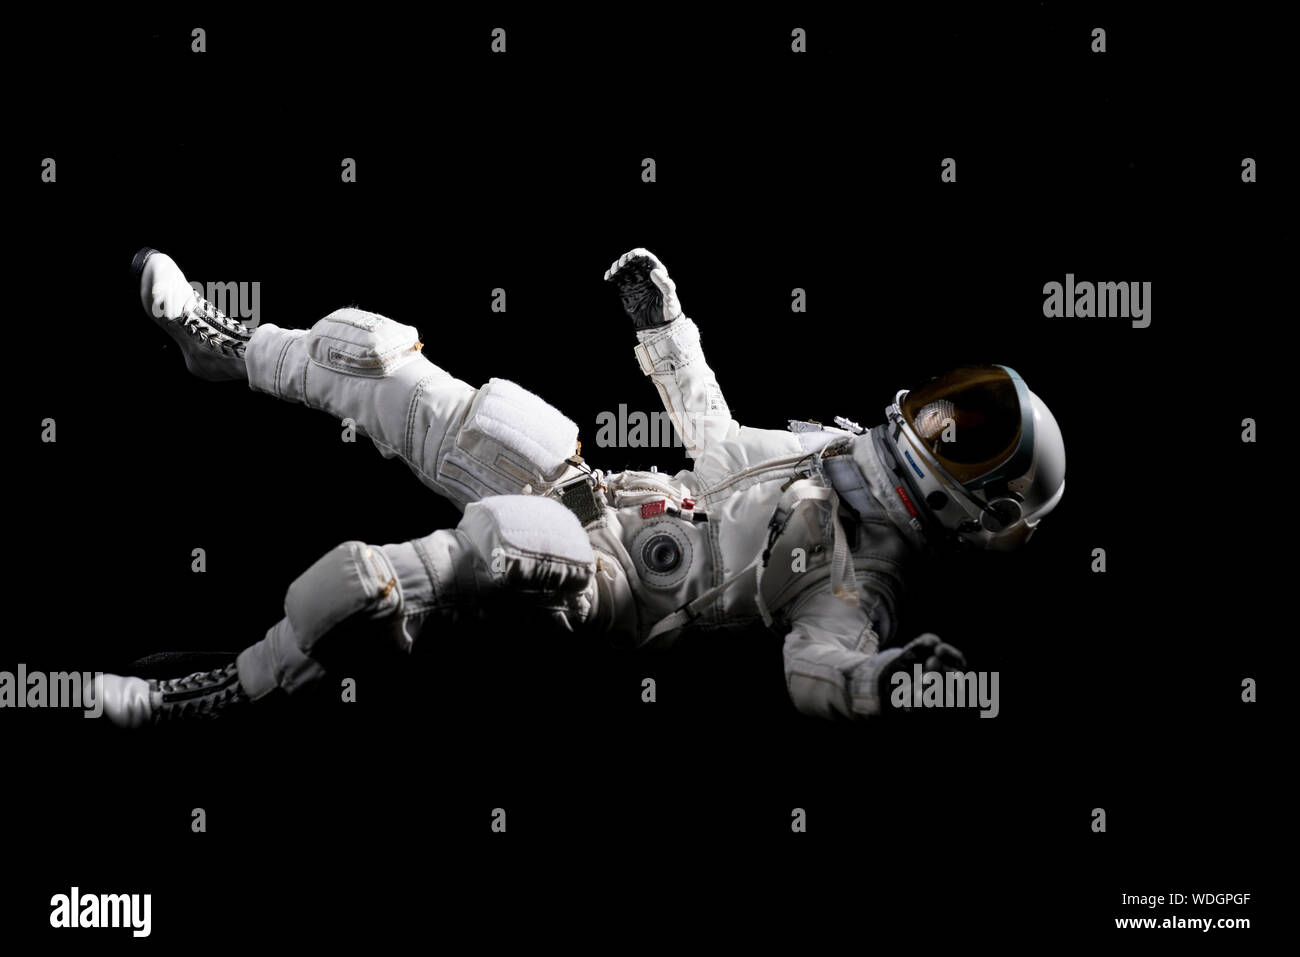 Astronaut Floating In Space Stock Photos Astronaut Floating In